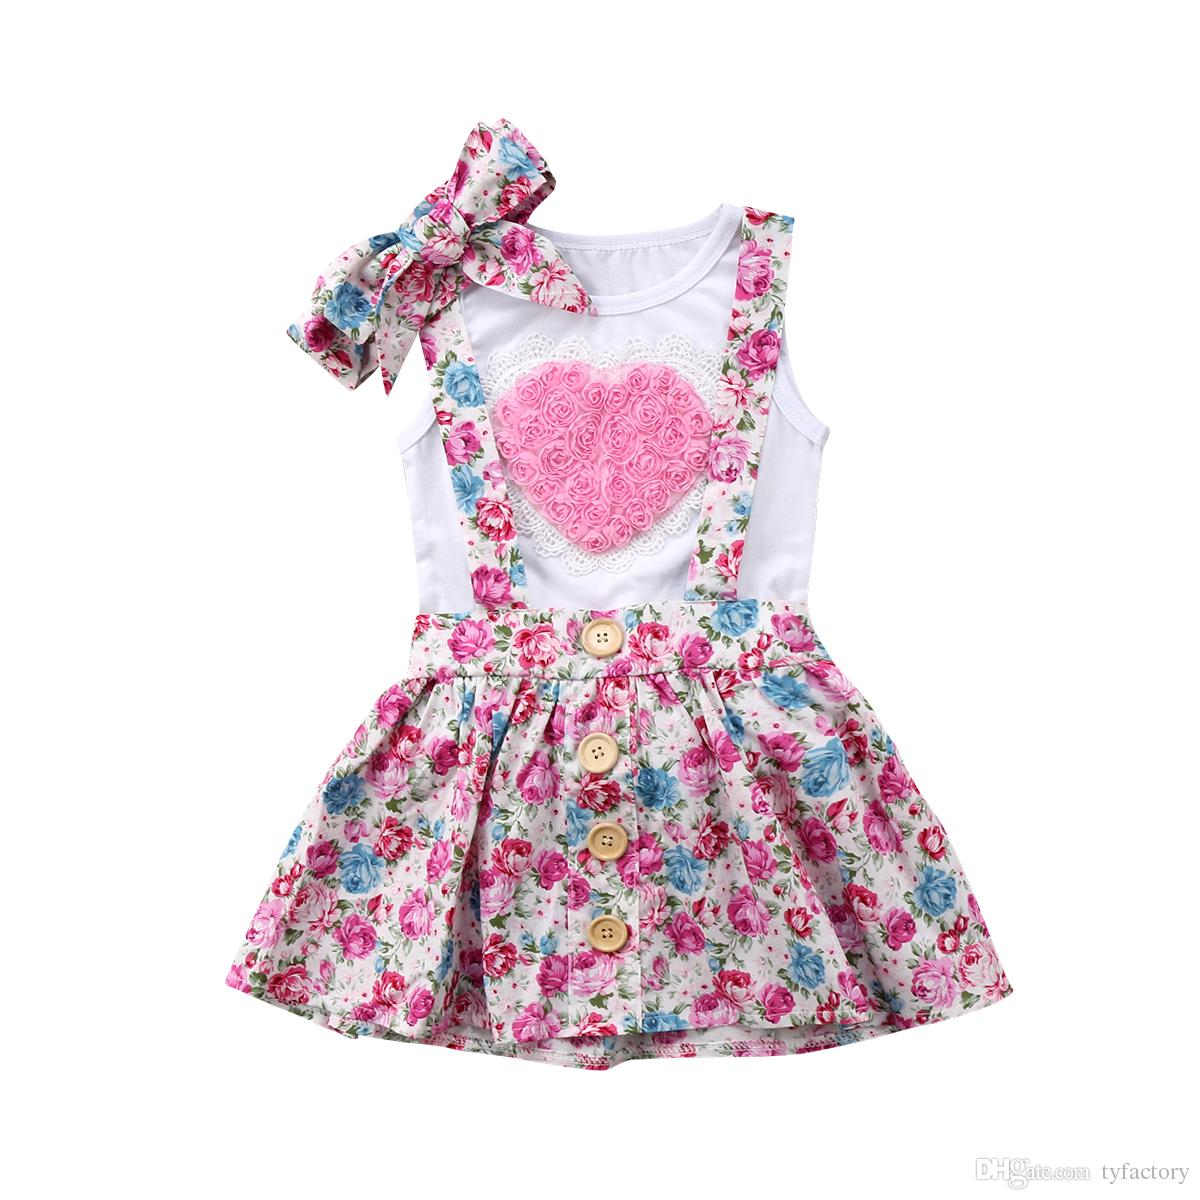 Floral Kids Baby Girls Overalls Dress Outfits Clothes T-shirt Vest Skirts Hairband 3PCS Set Pink Heart Family Matching Clothing Toddler